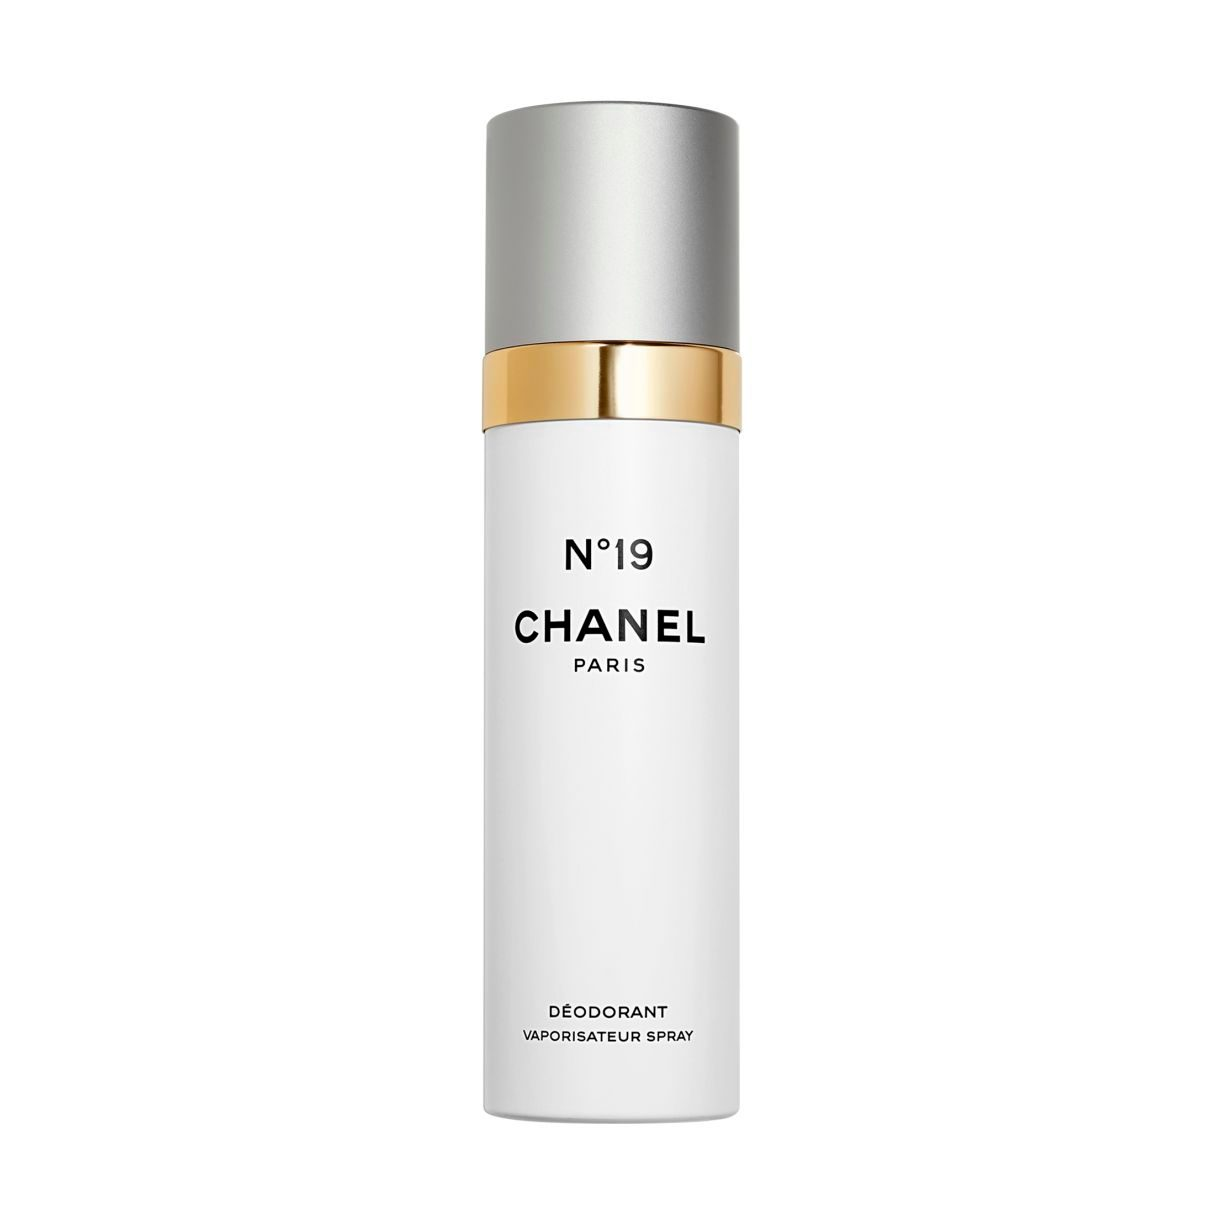 N°19 DEODORANT SPRAY 100ml